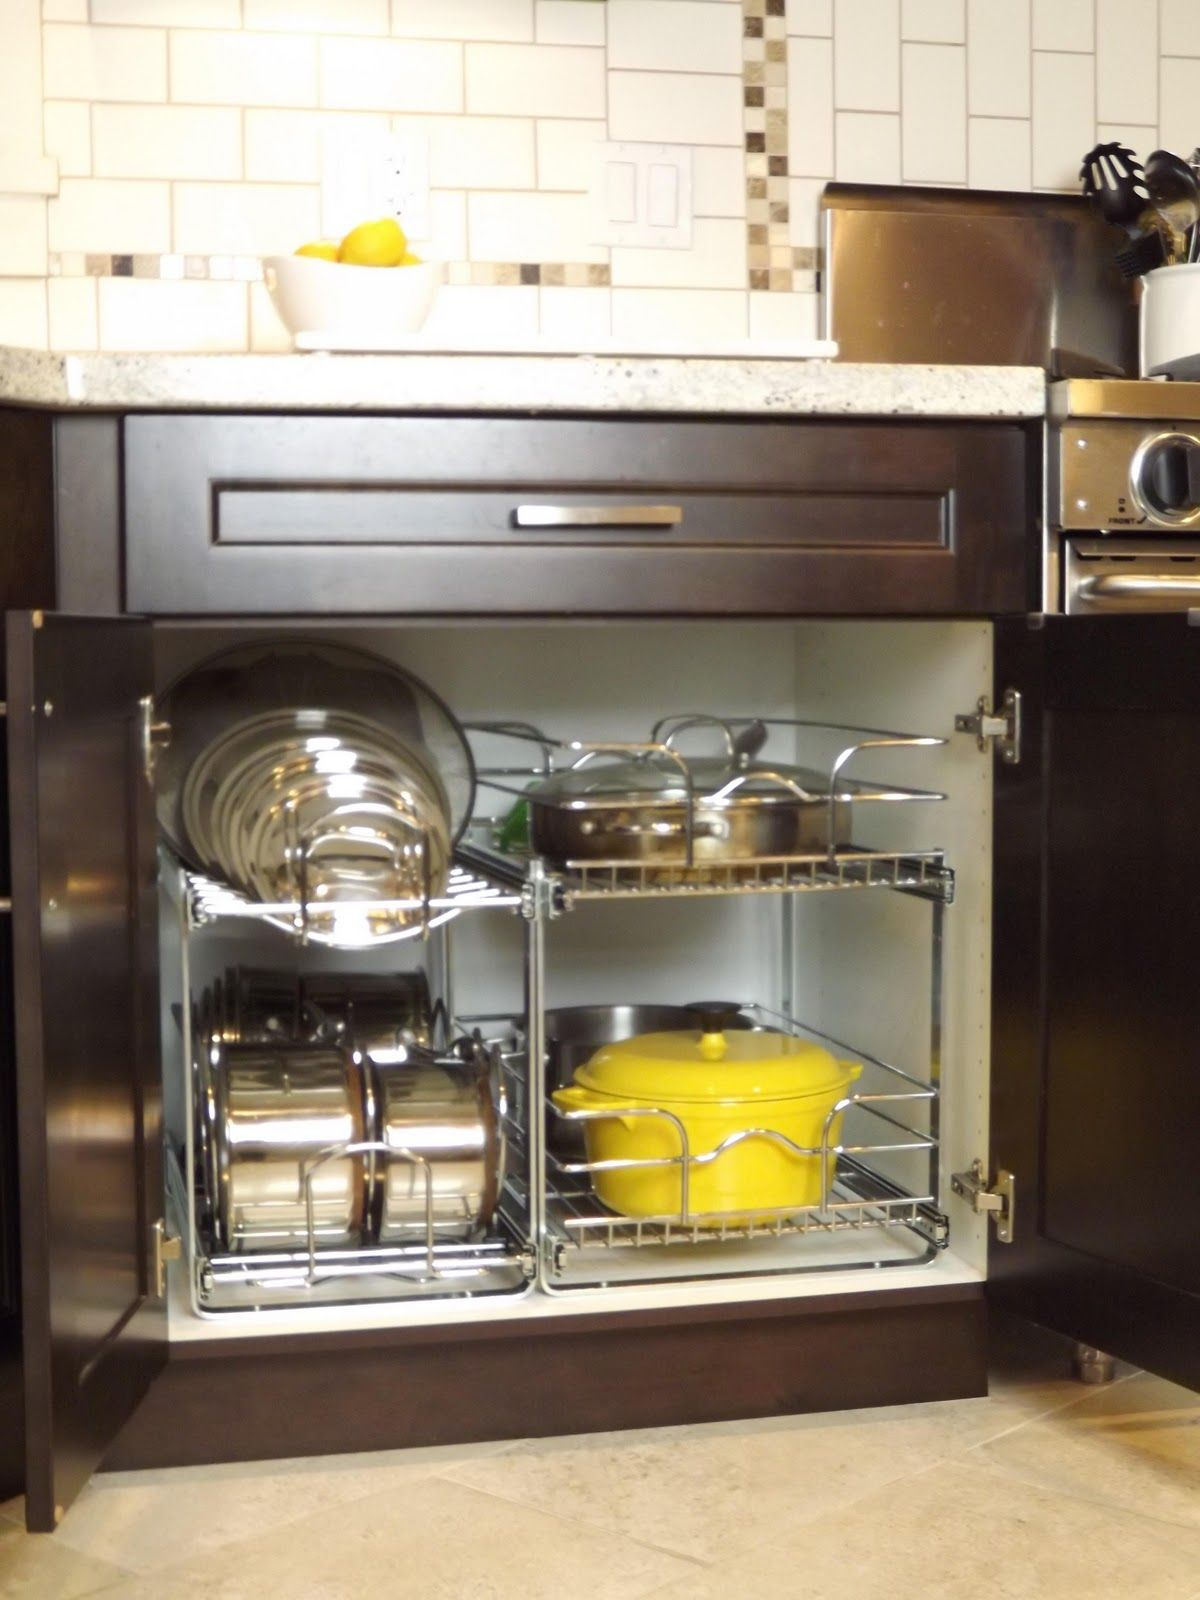 15 Beautifully Organized Kitchen Cabinets and Tips We Learned from